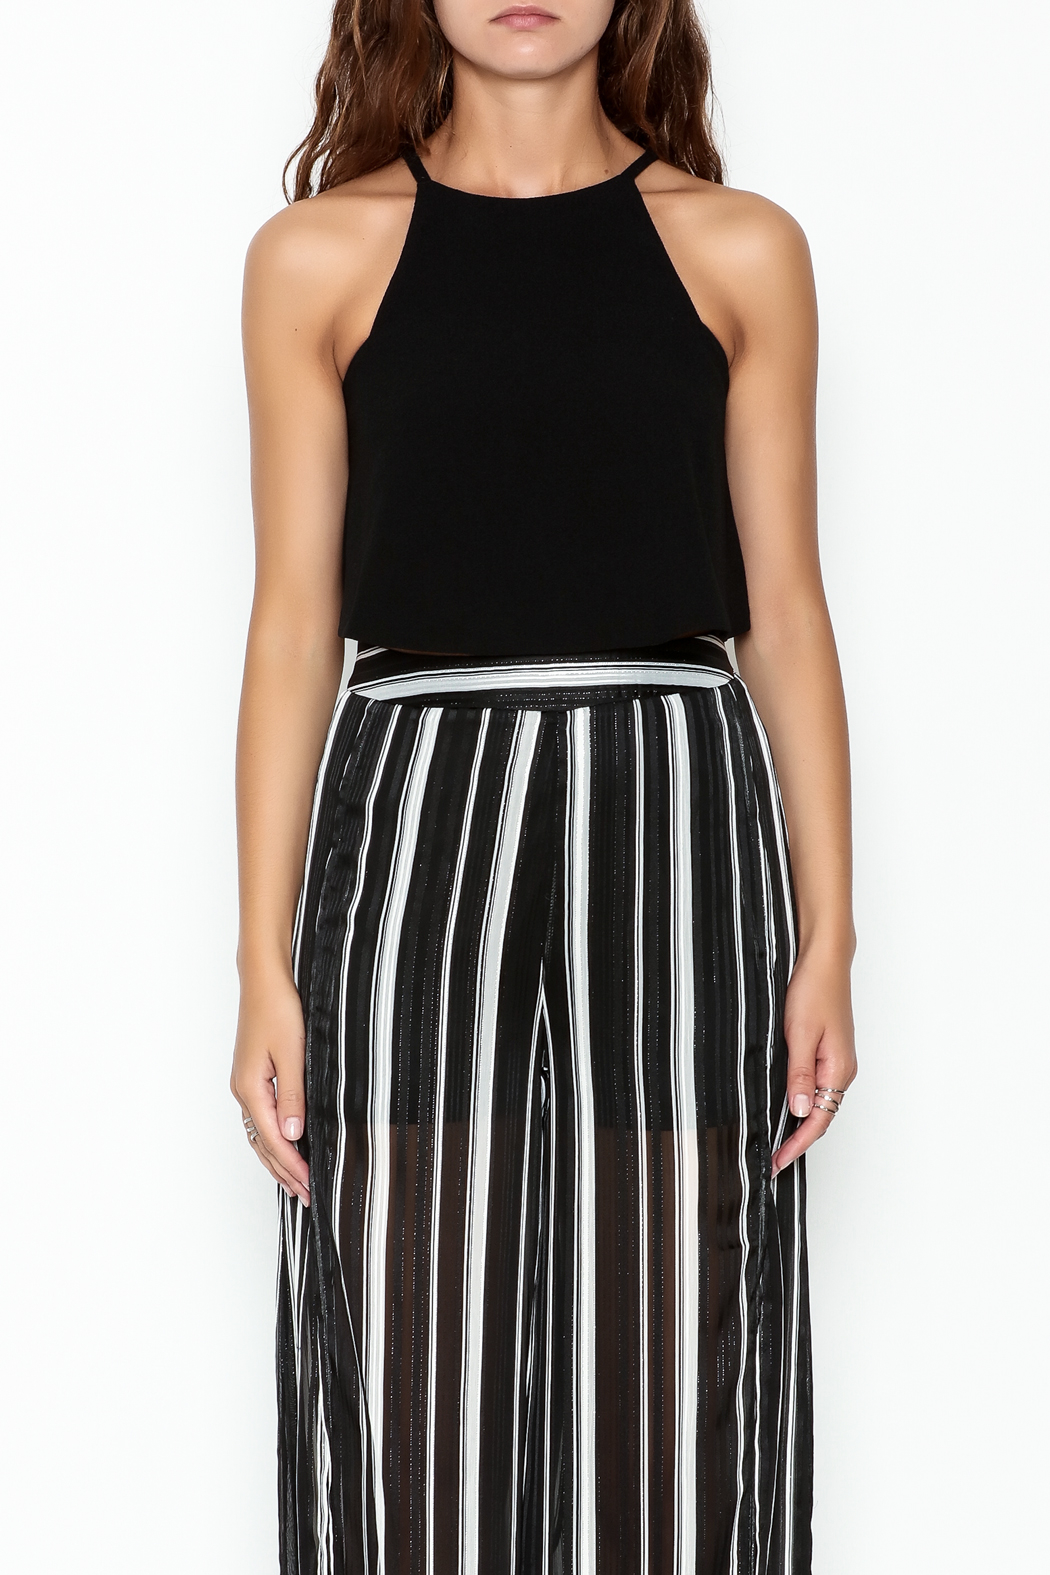 Olivaceous Crepe Swing Crop Top - Front Full Image